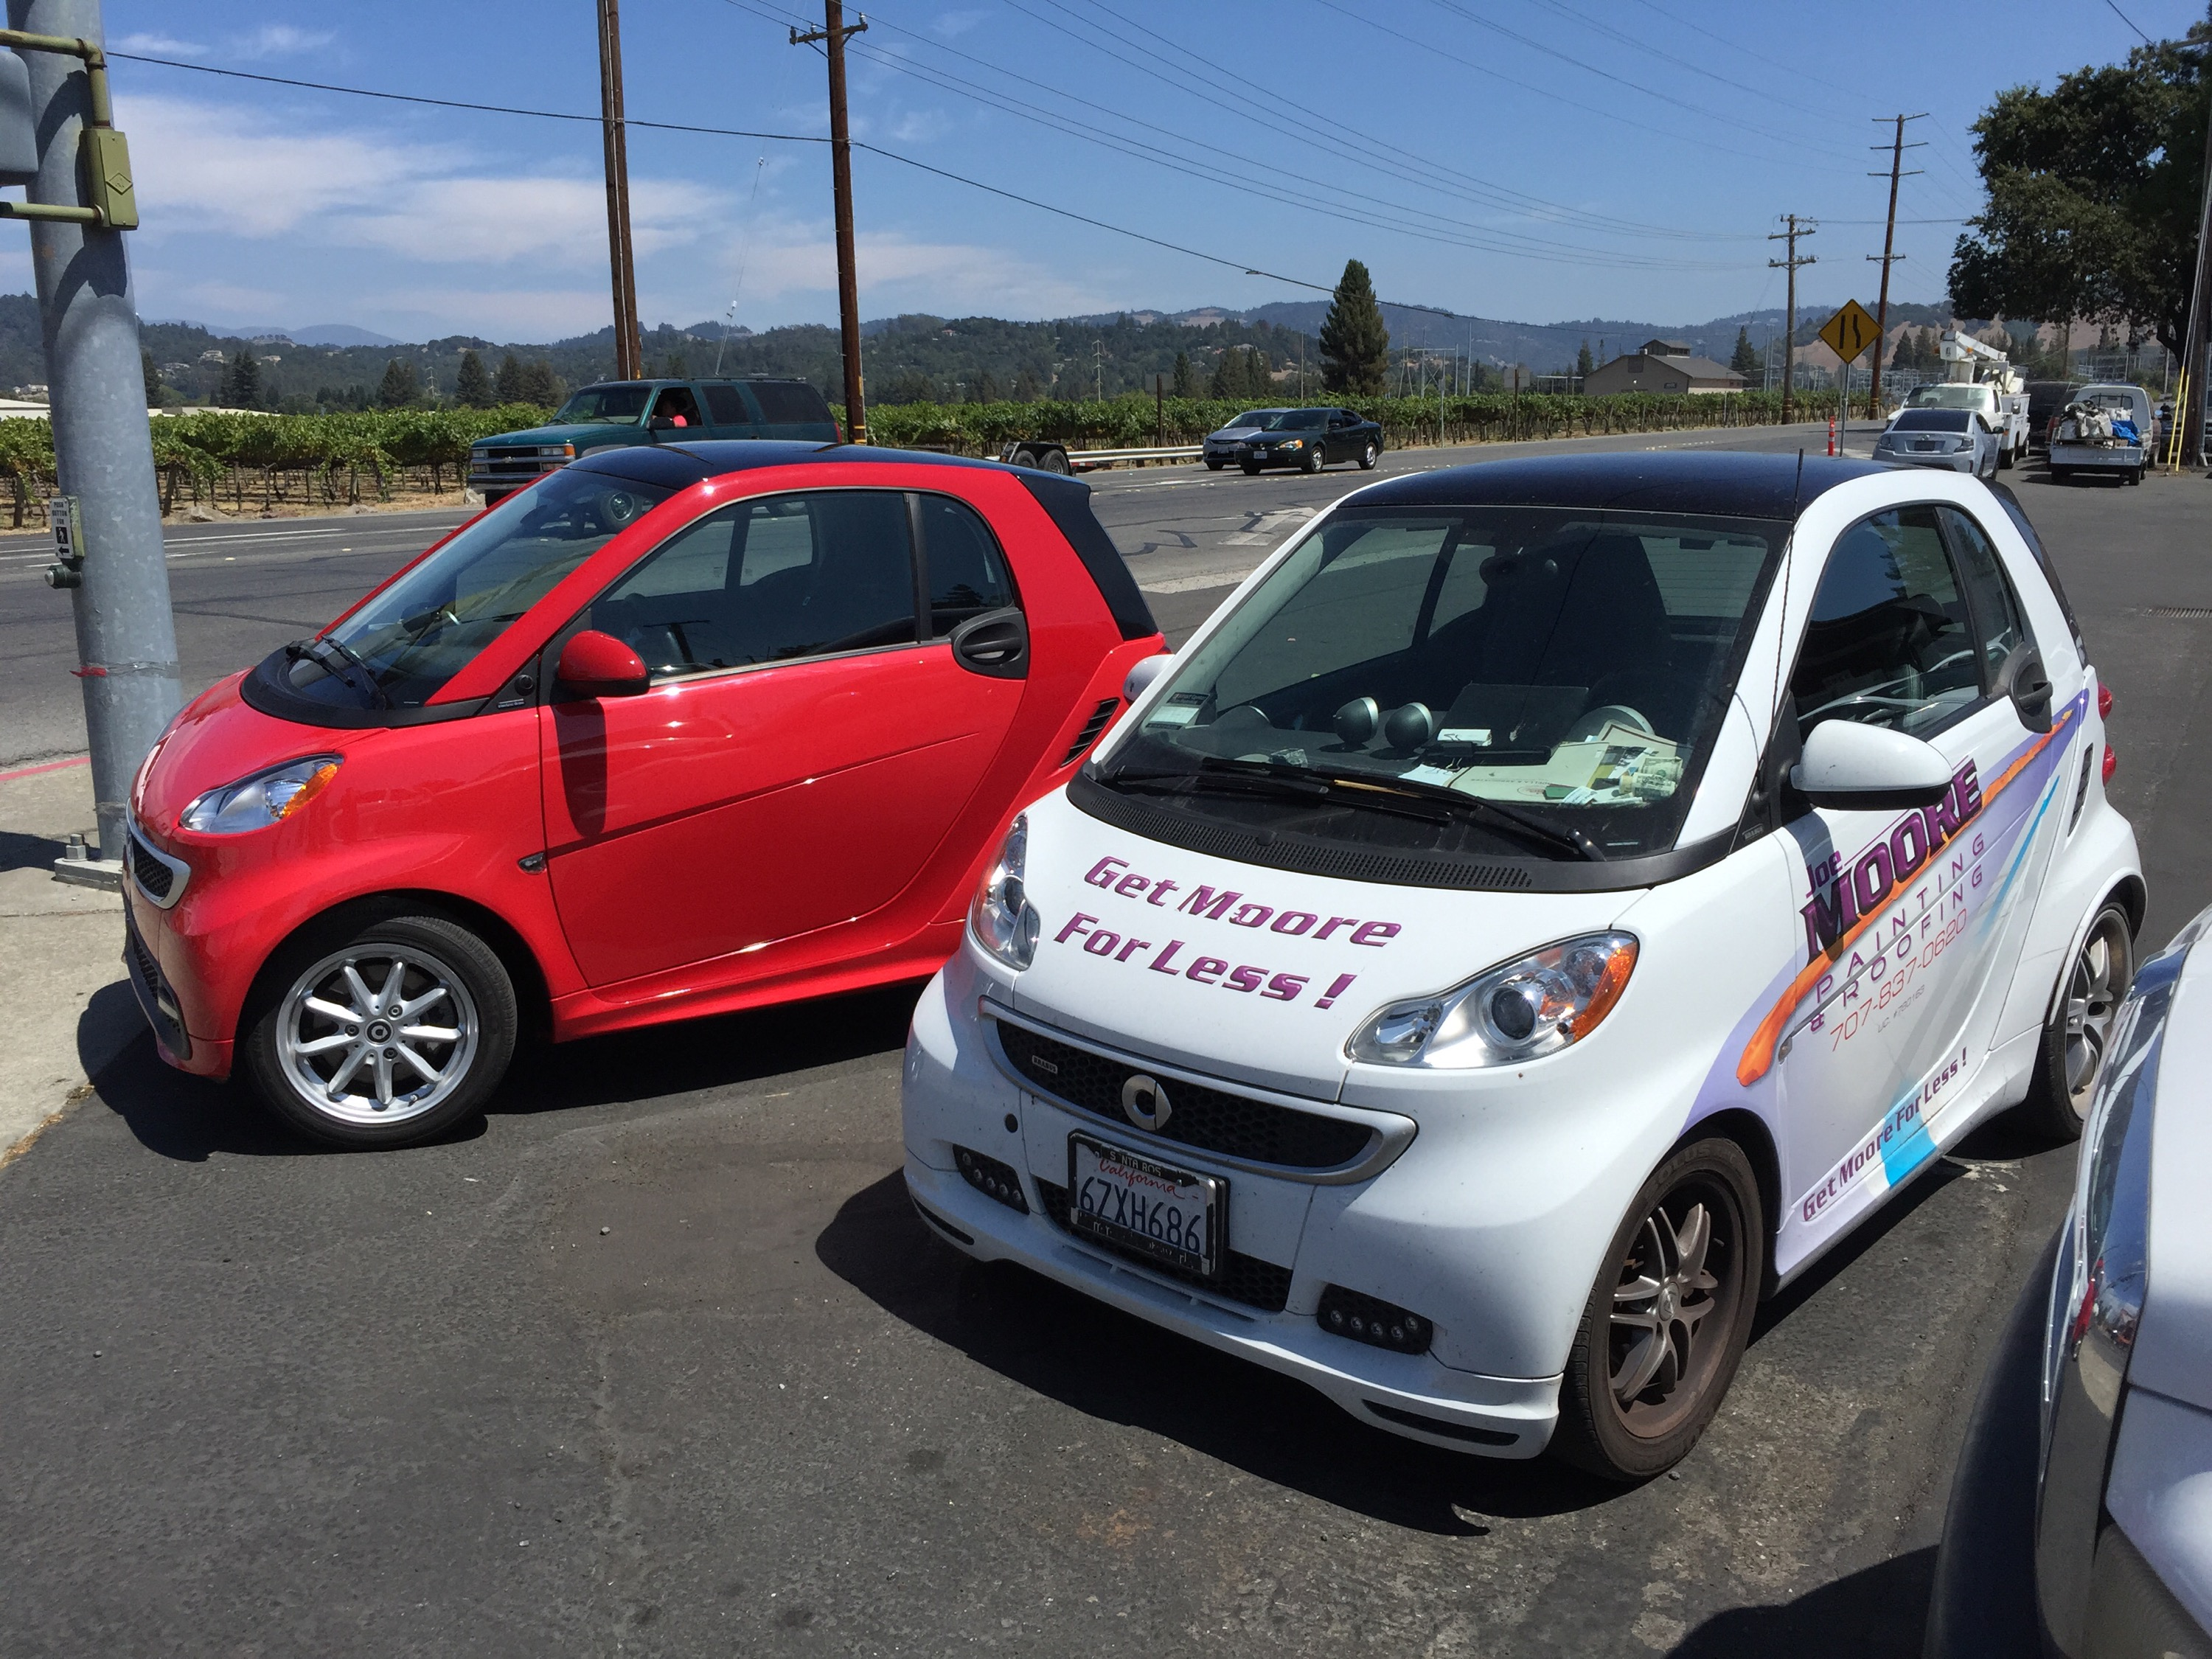 gas and electric Smart Cars parked st Sixt car rentals os Santa Rosa, California.